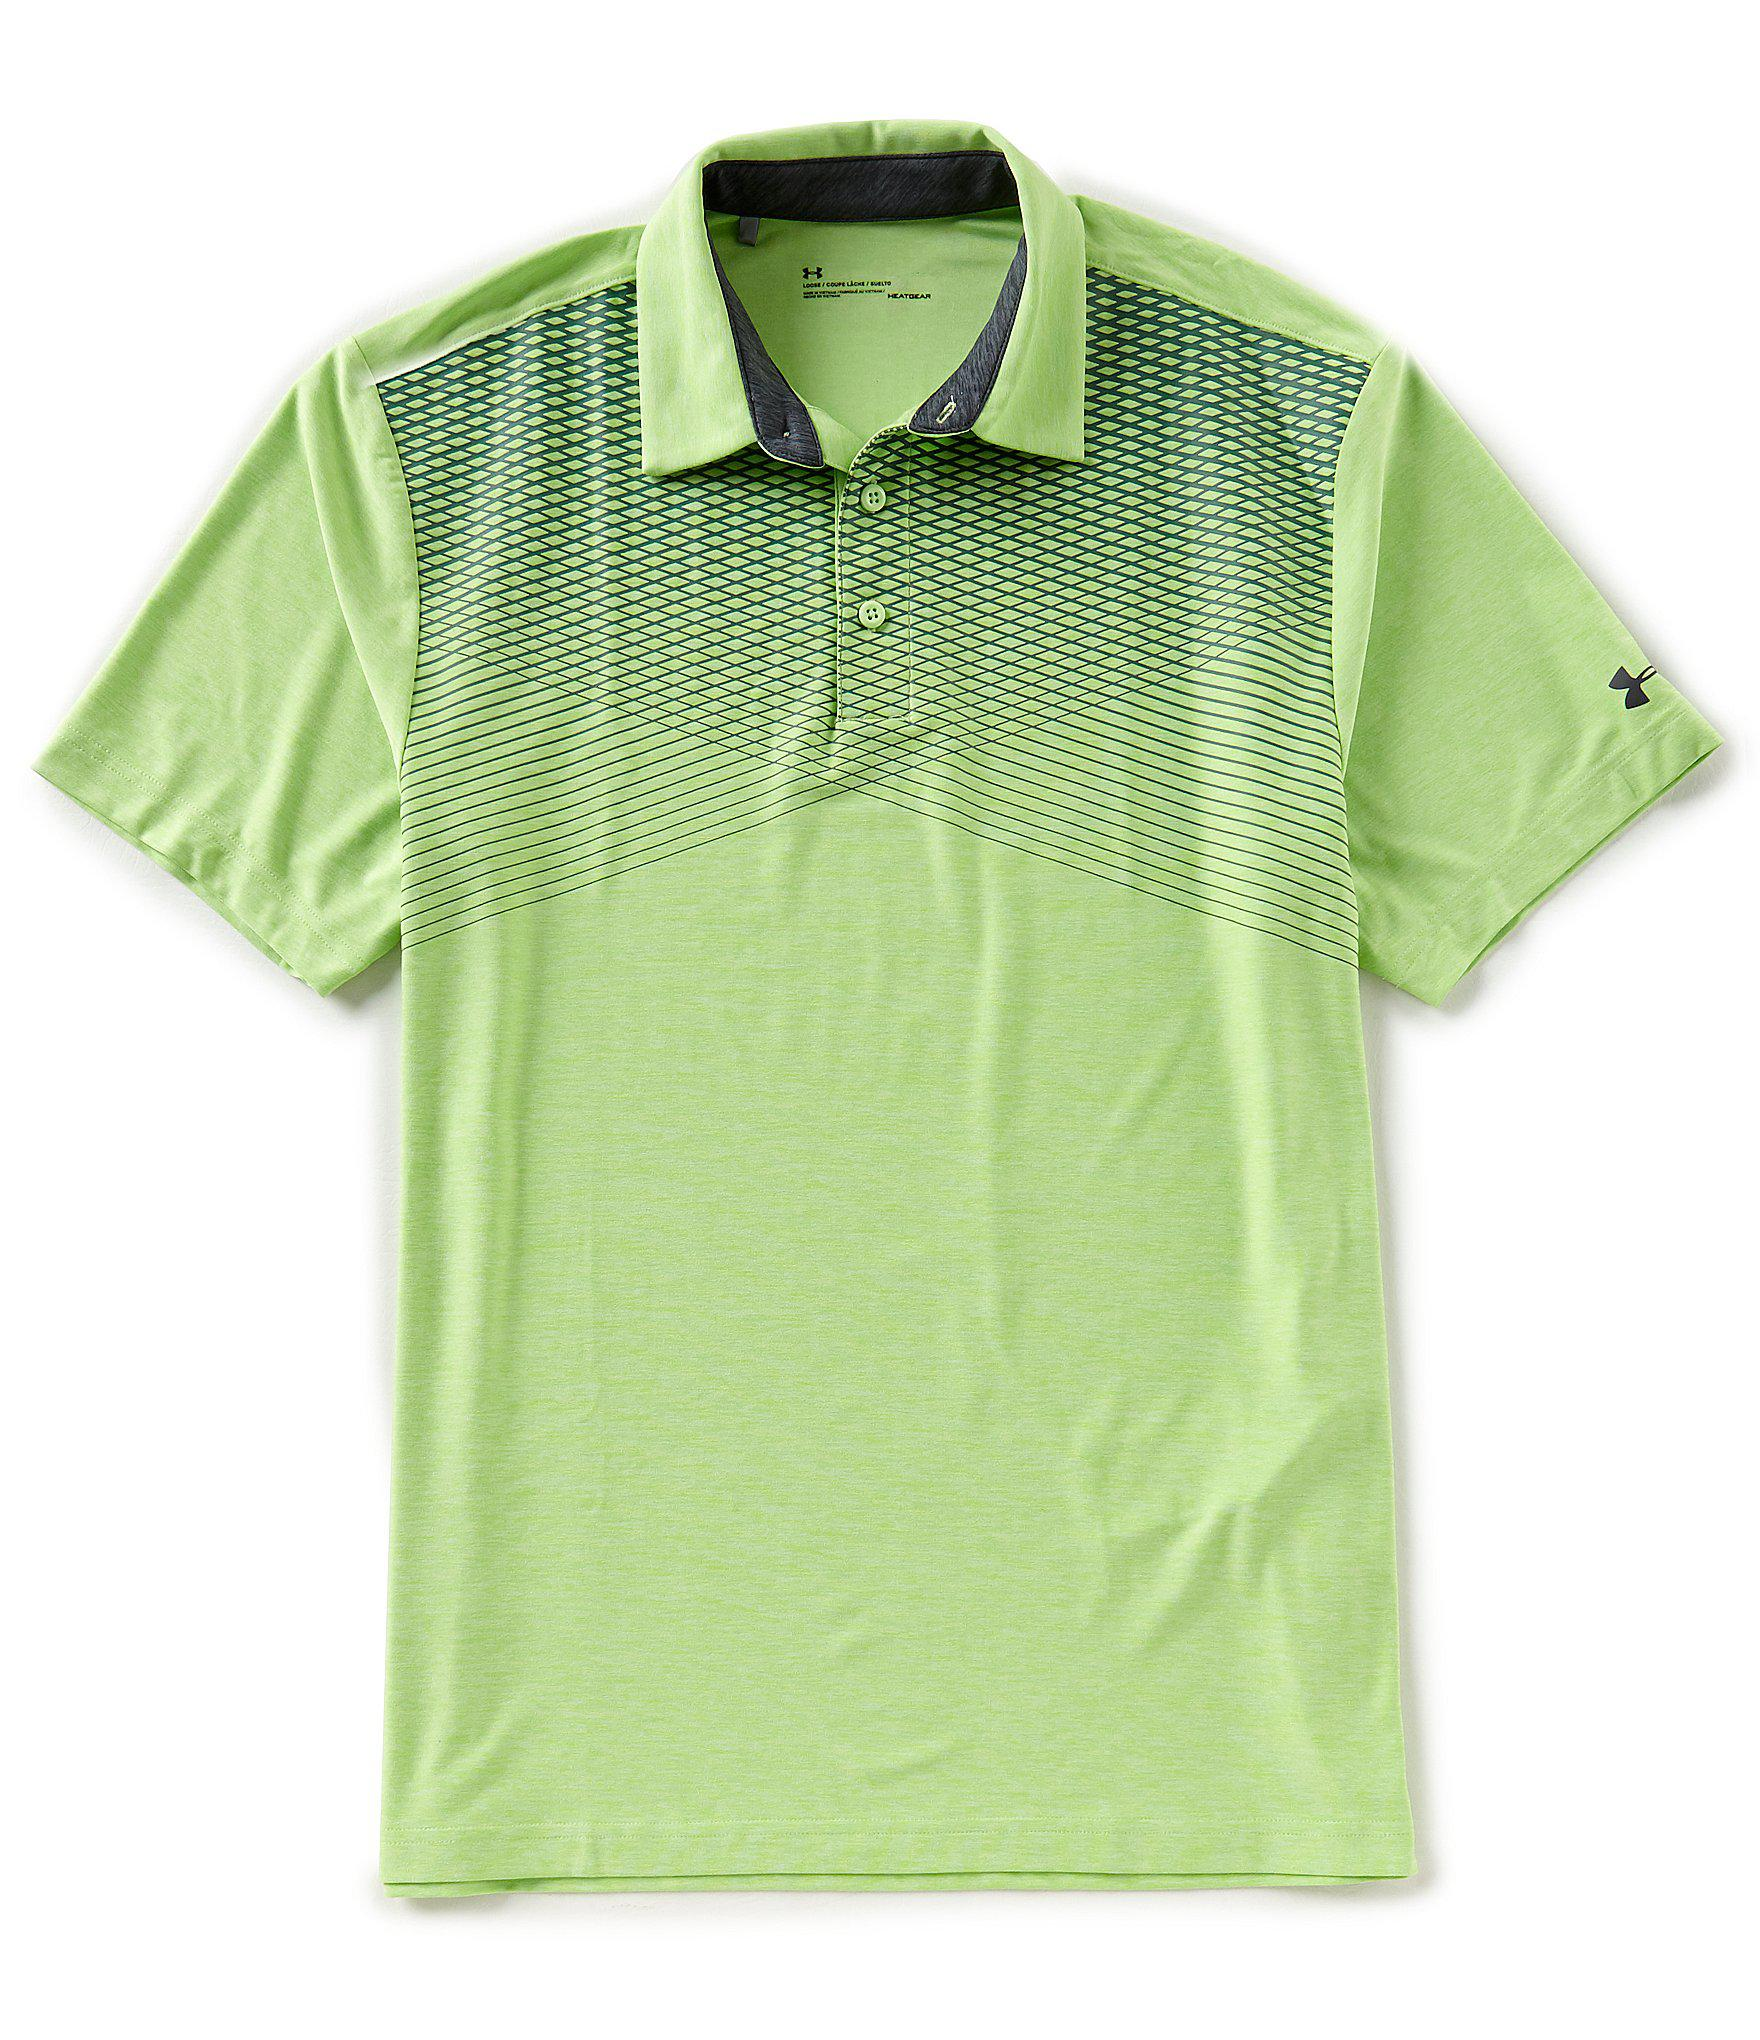 Lyst Under Armour Golf Lines Print Playoff Polo Shirt In Green For Men